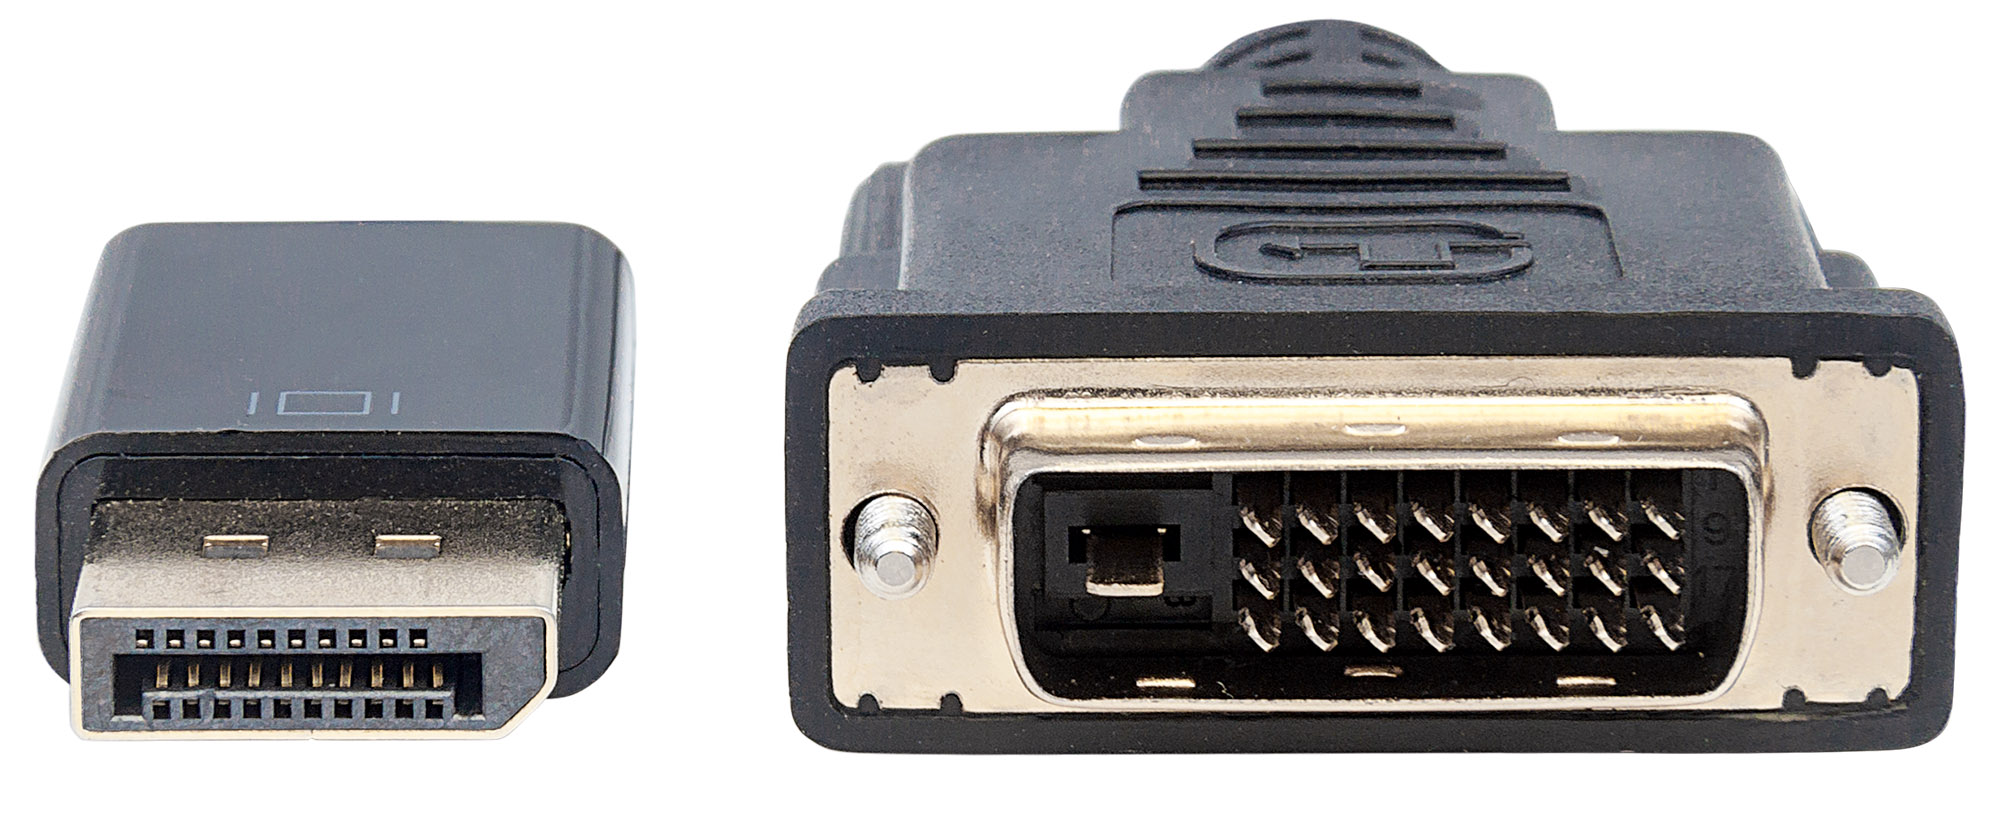 DisplayPort 1.2a to DVI Cable